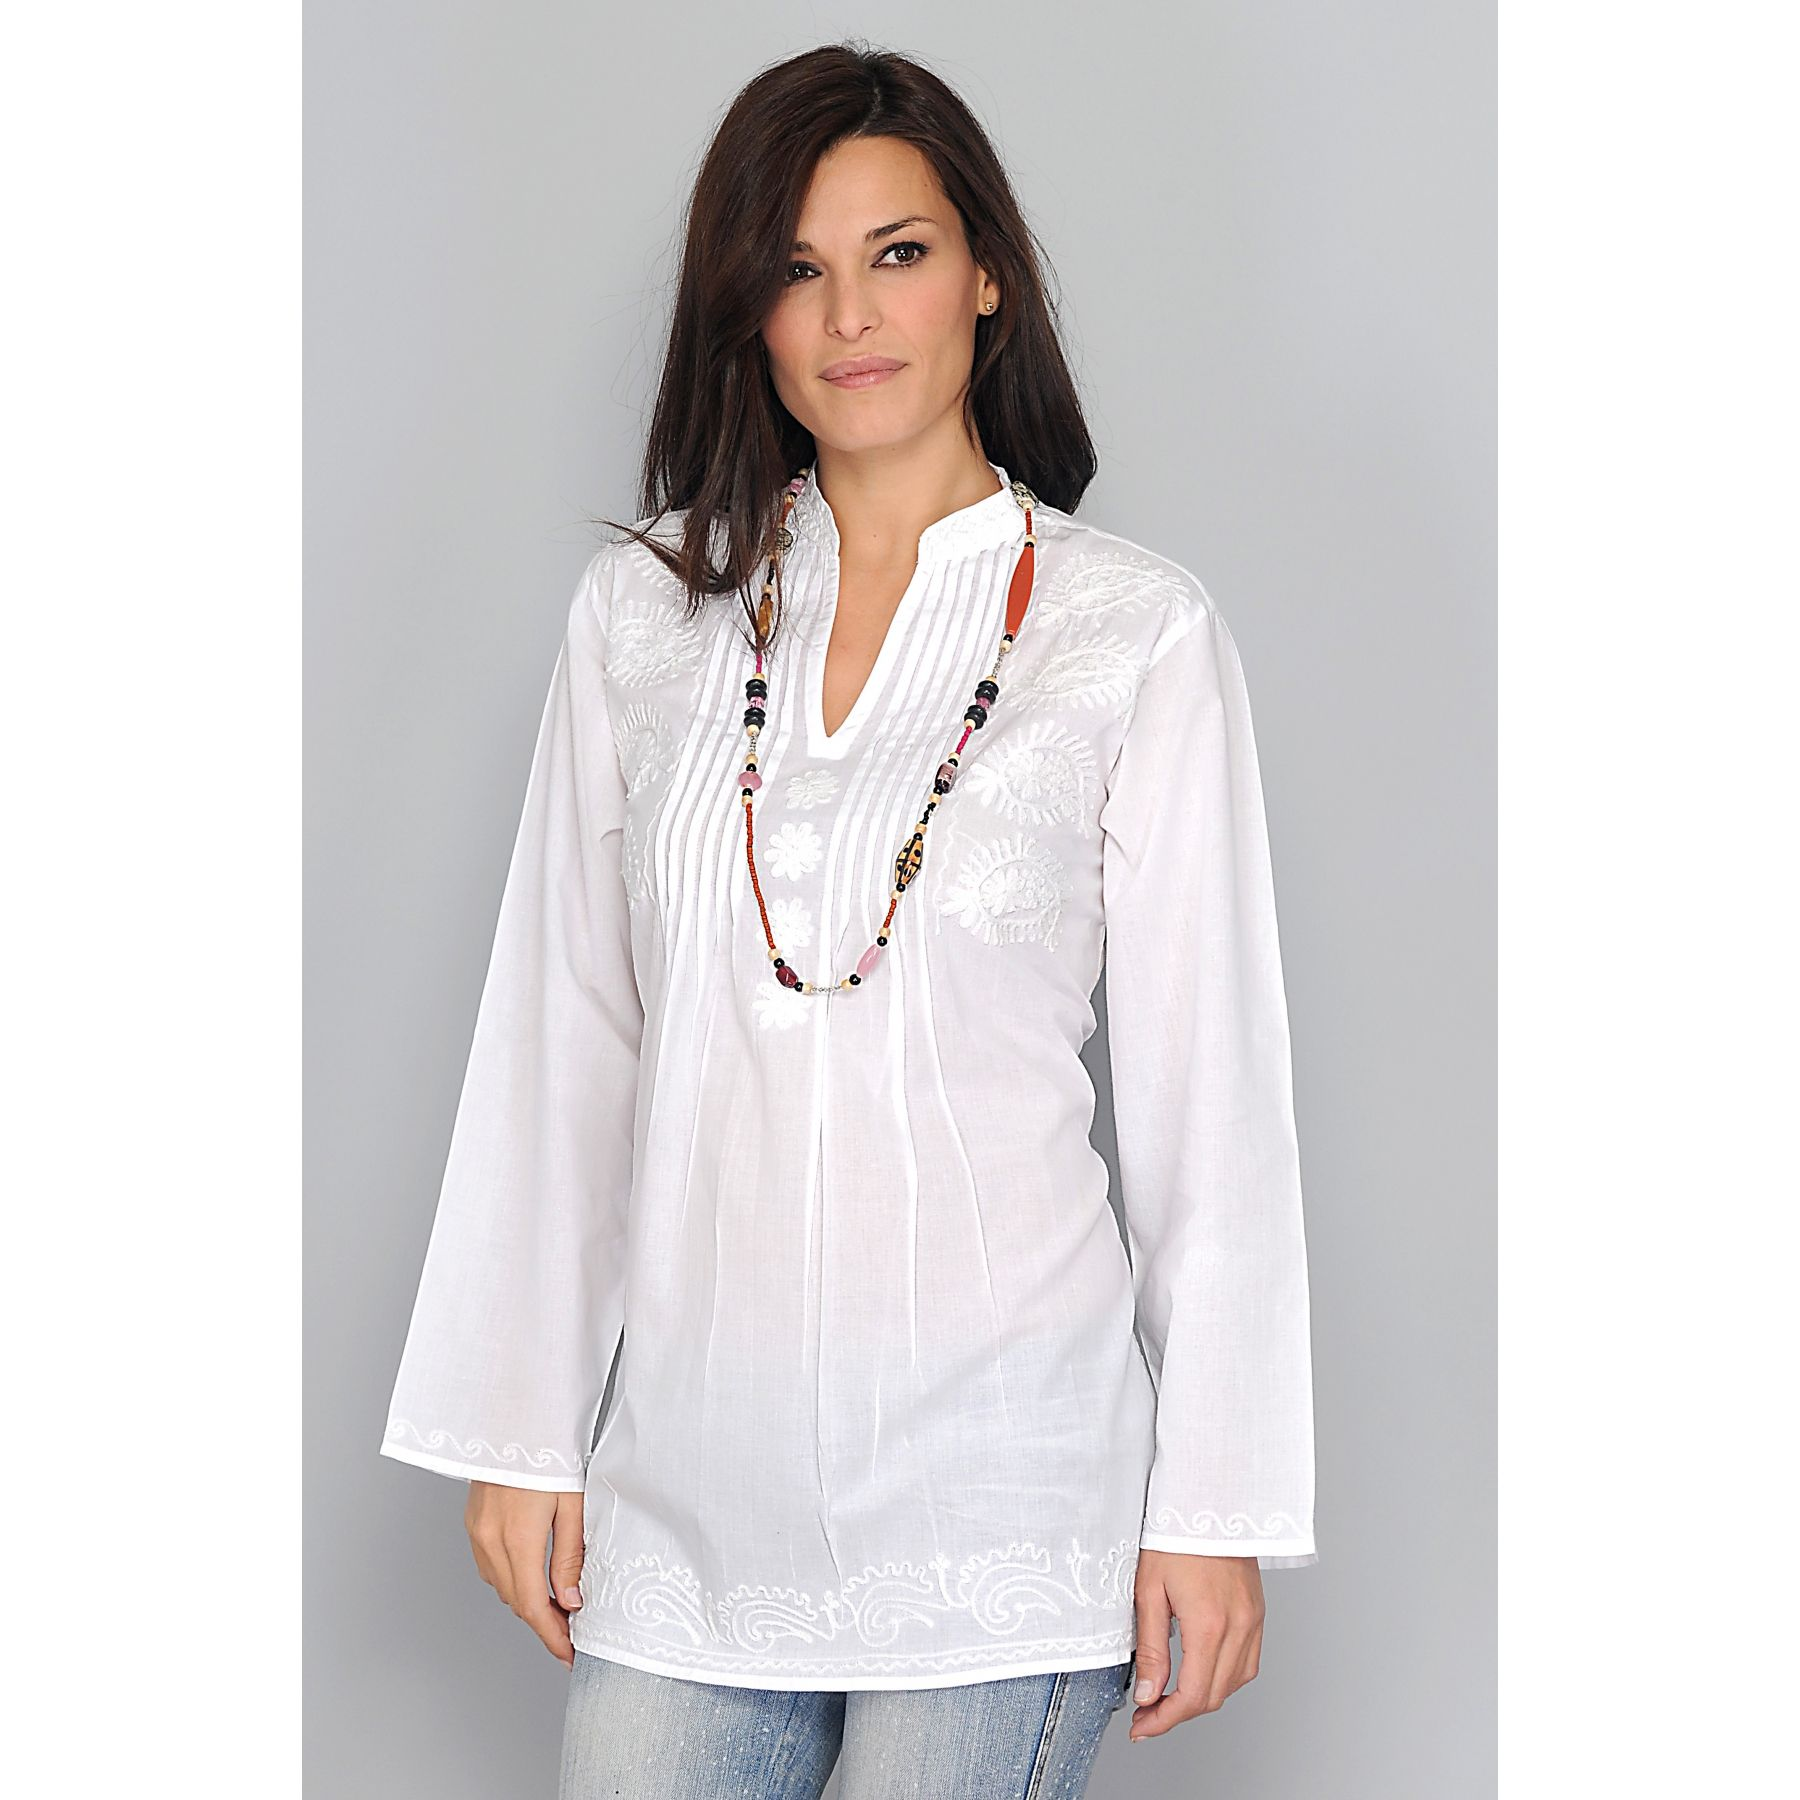 ac53f757af2fd White blouseropa online colombia